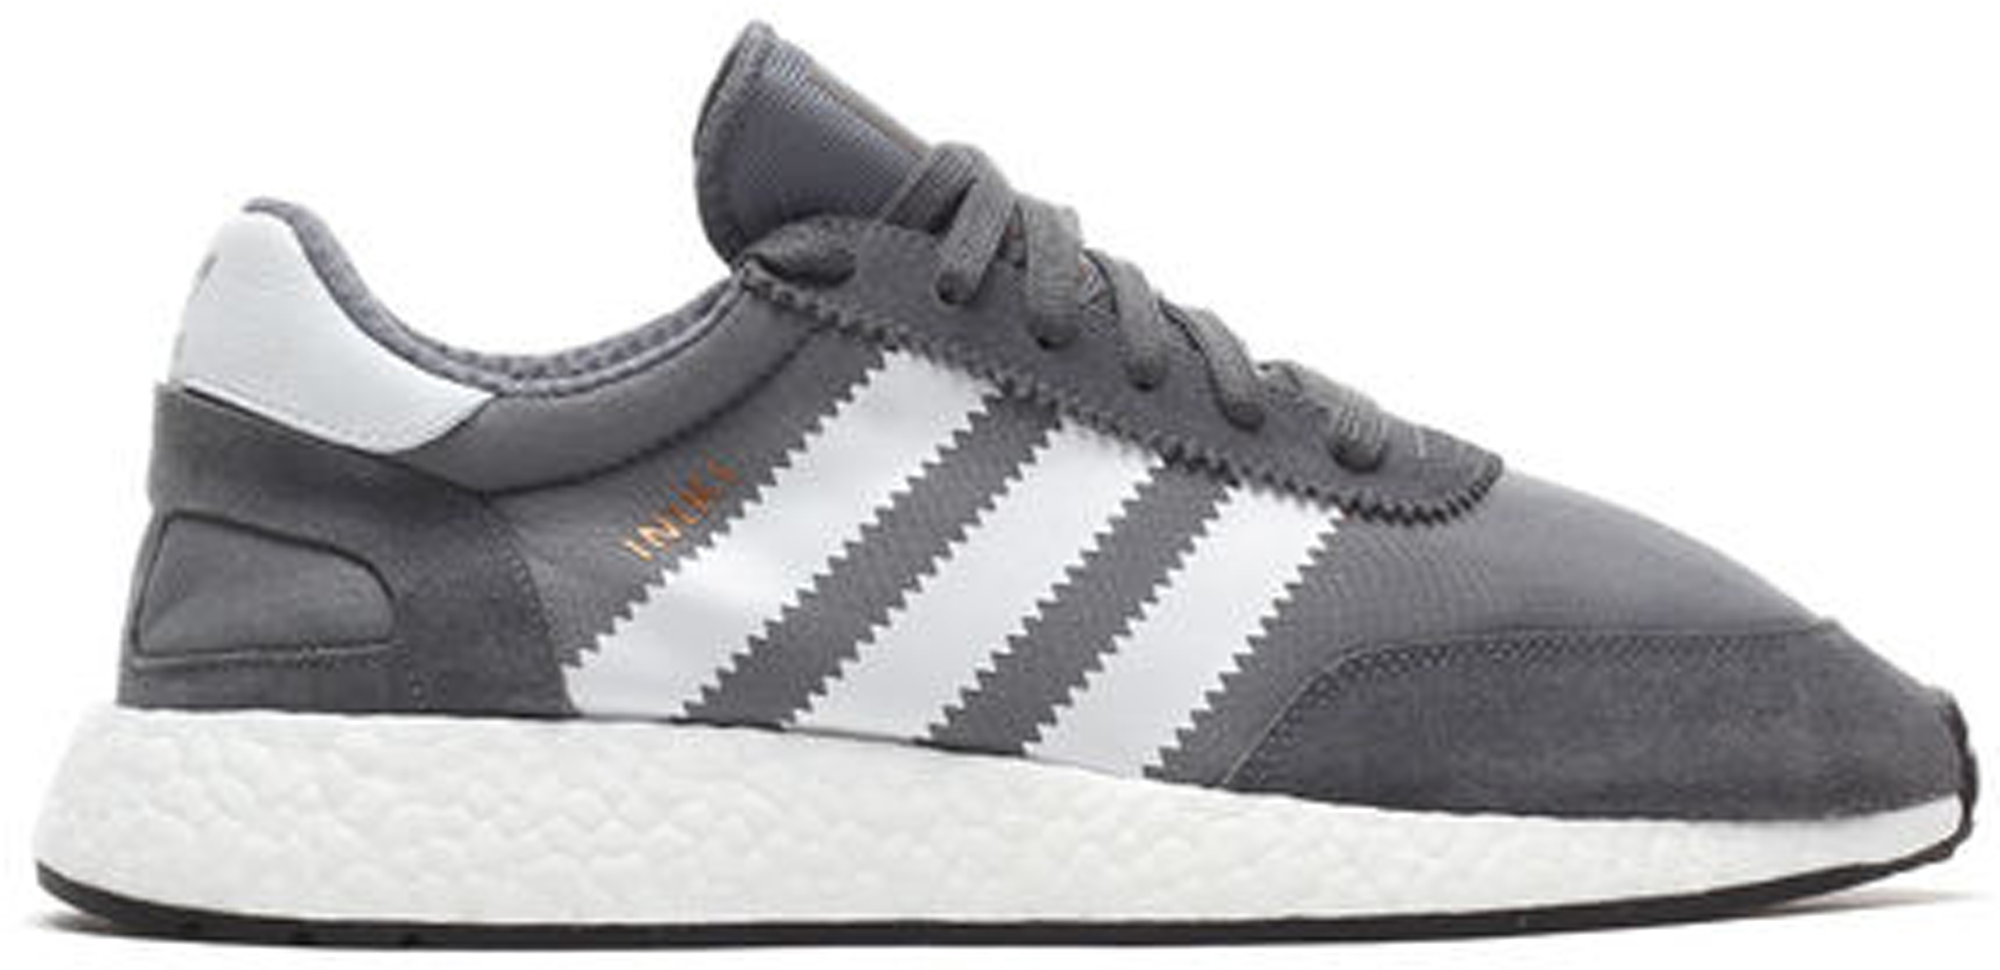 adidas Iniki Runner Vista Grey